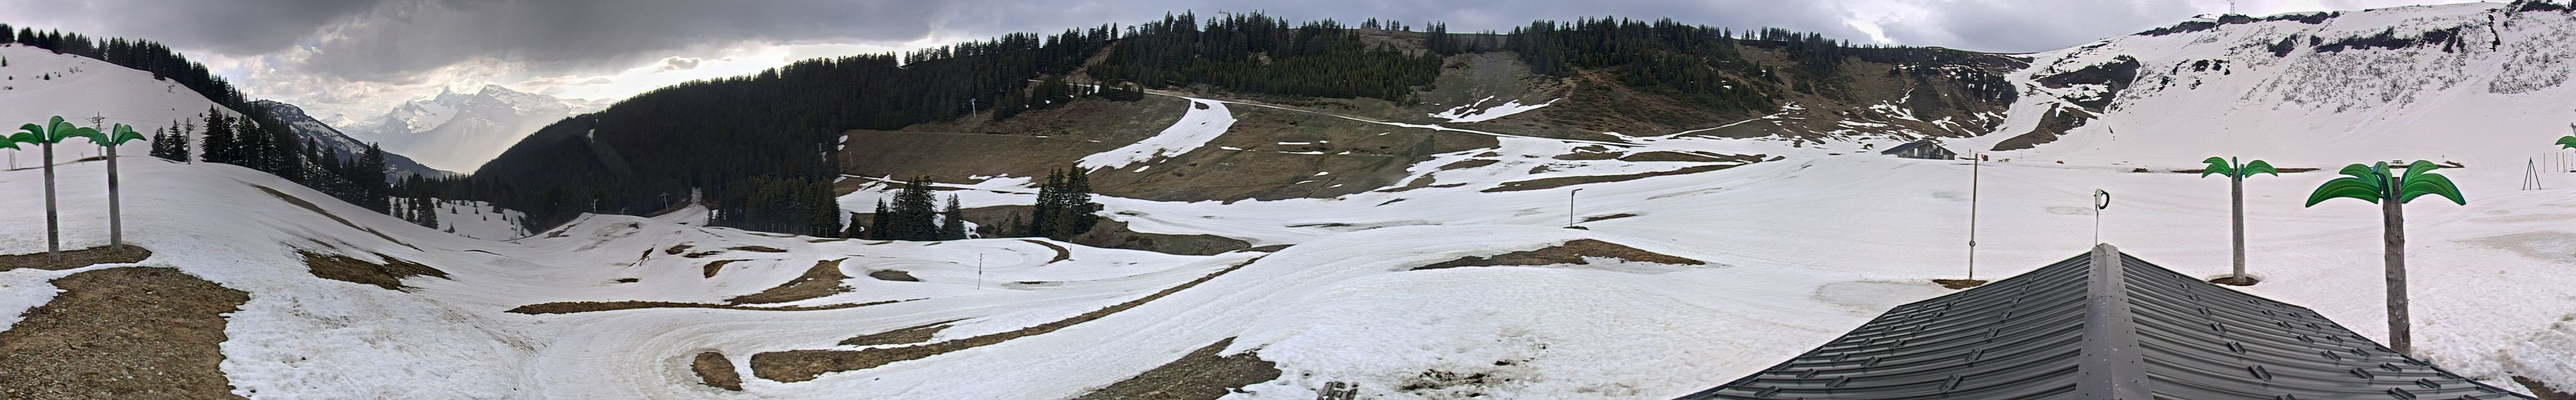 Les Carroz webcam - Oasis Cool Zone panorama